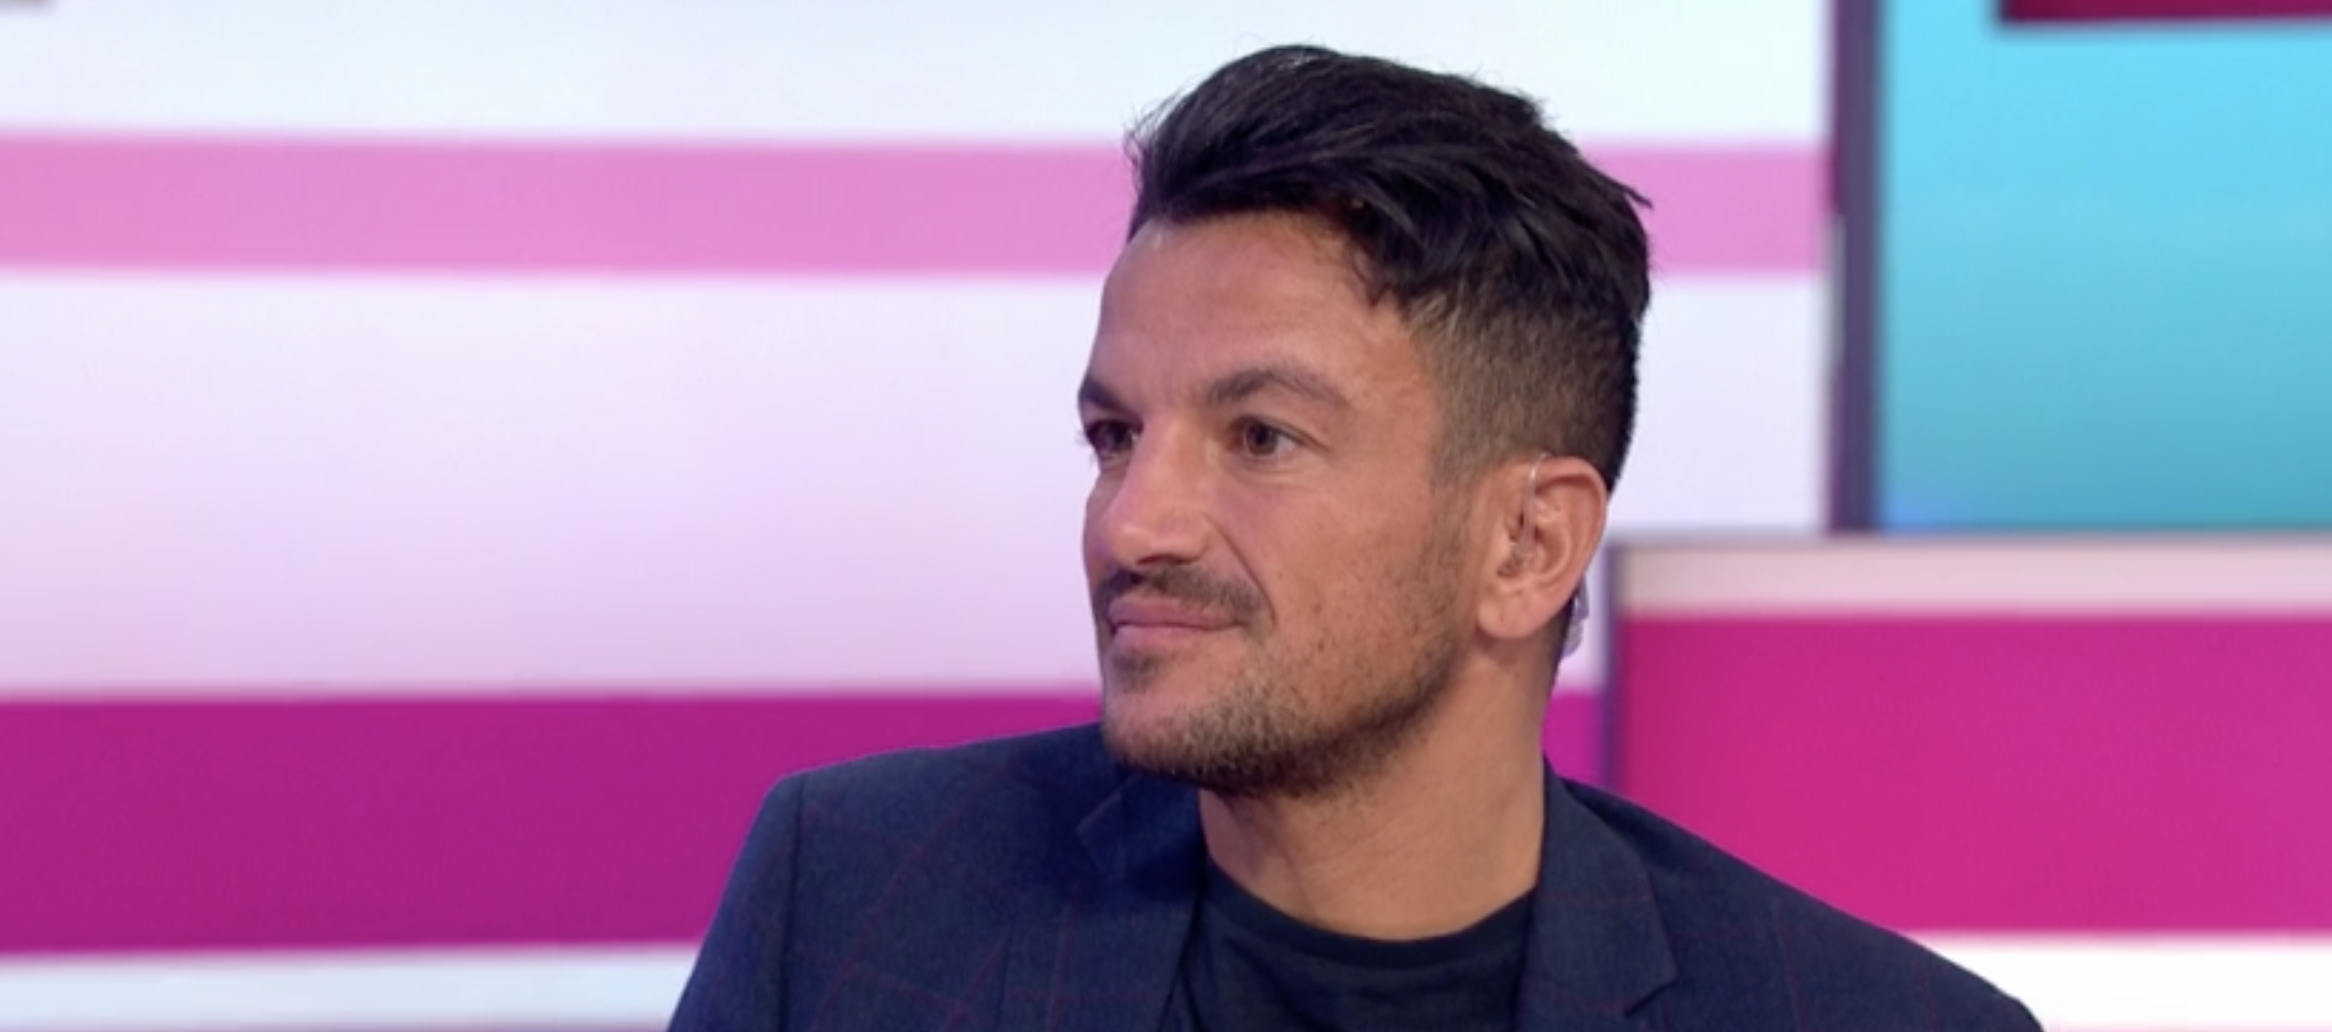 Peter Andre reveals painful reason why he won't style his hair naturally